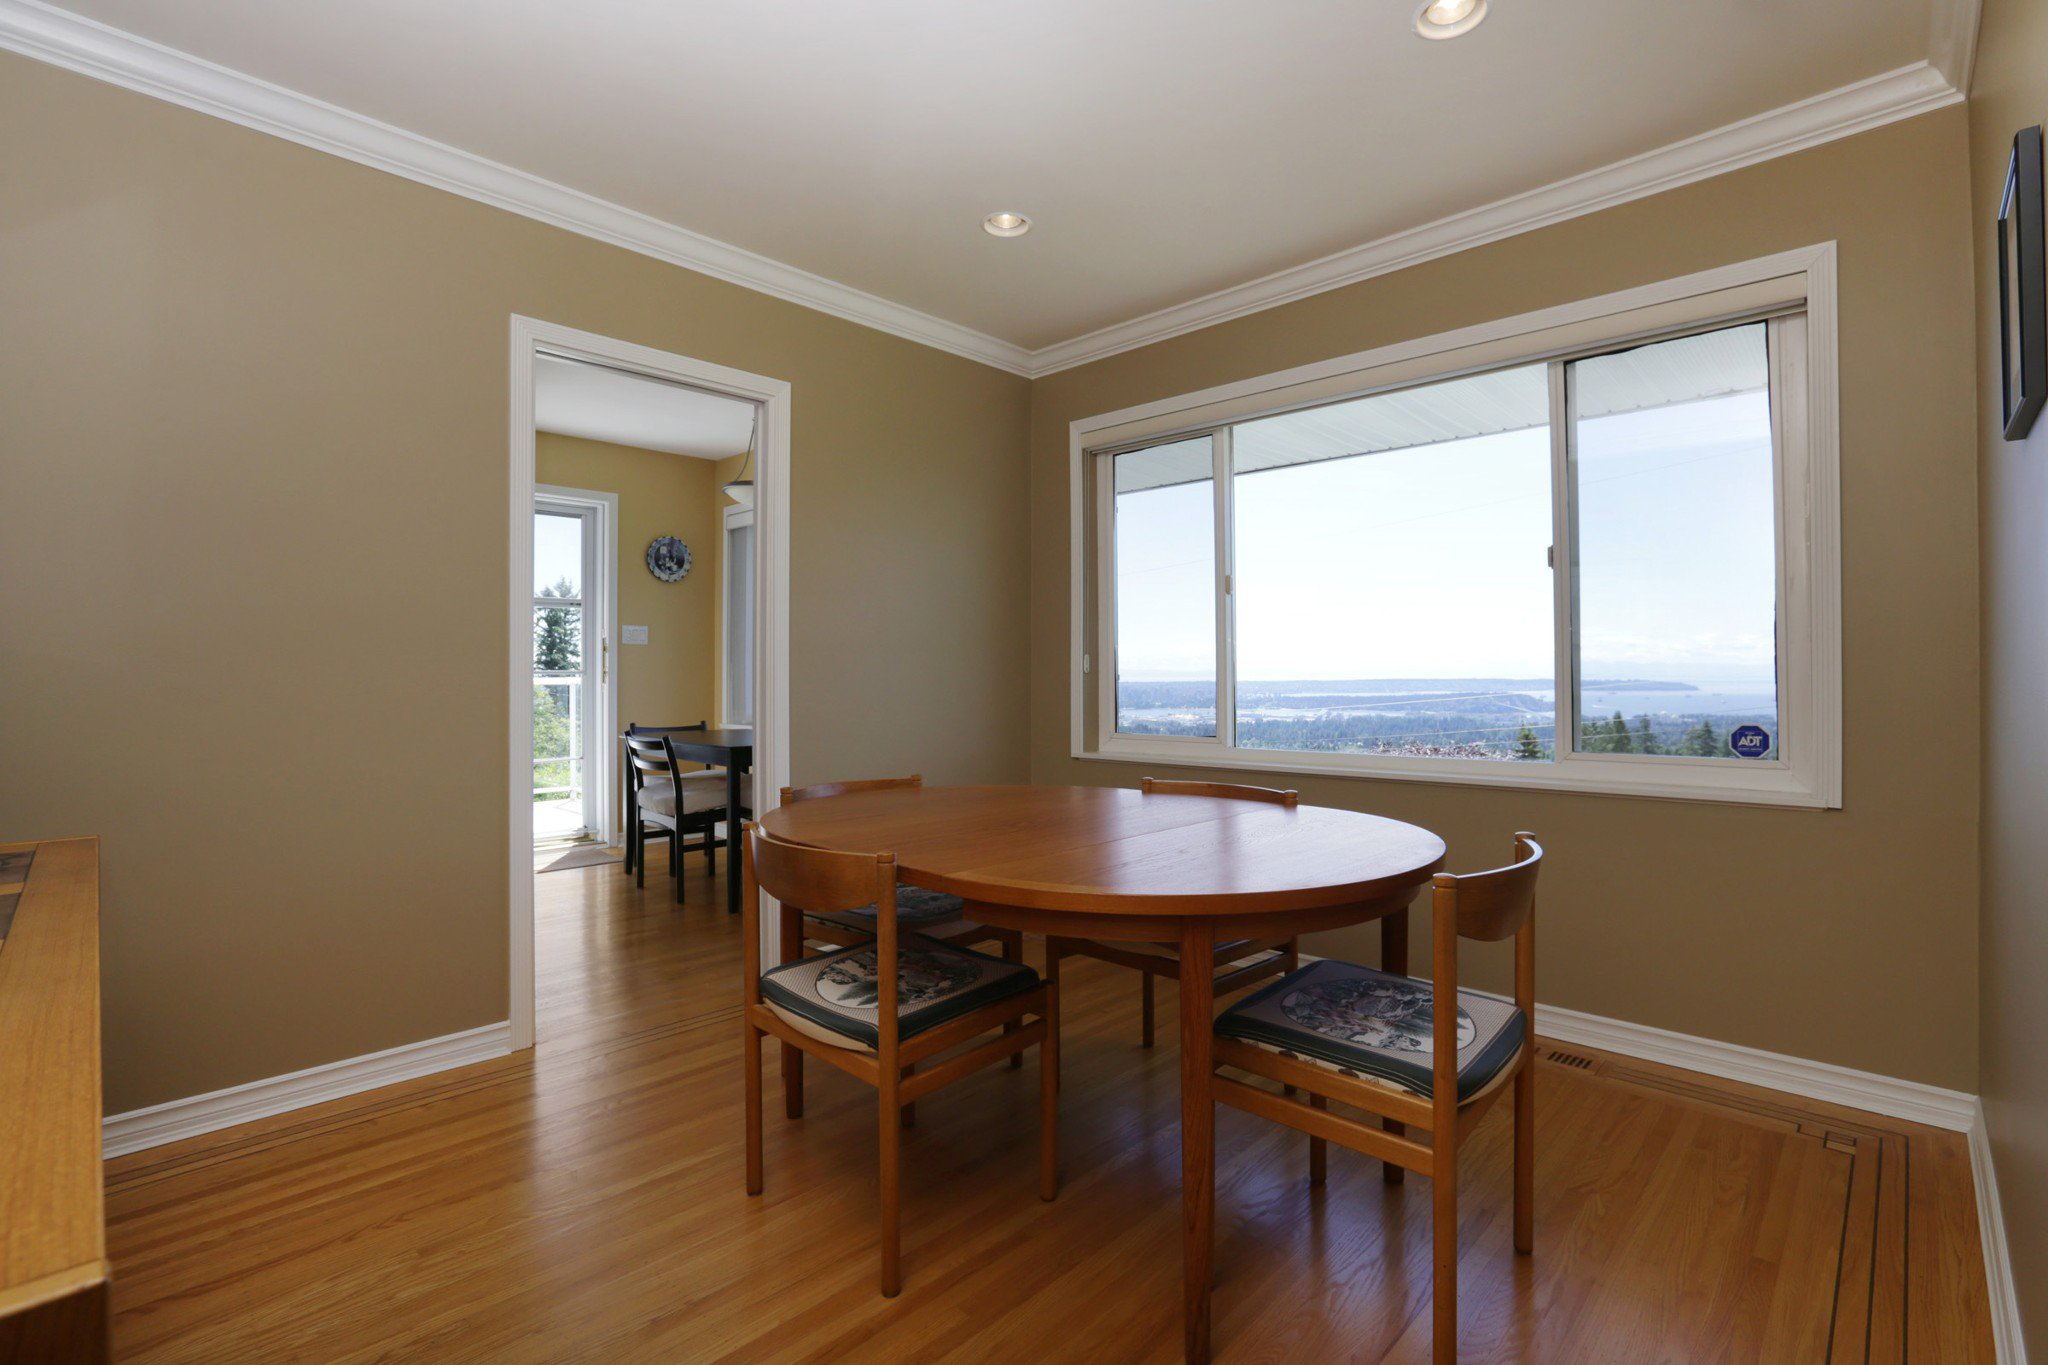 Photo 4: Photos: 372 VENTURA Crescent in North Vancouver: Upper Delbrook House for sale : MLS®# R2284717